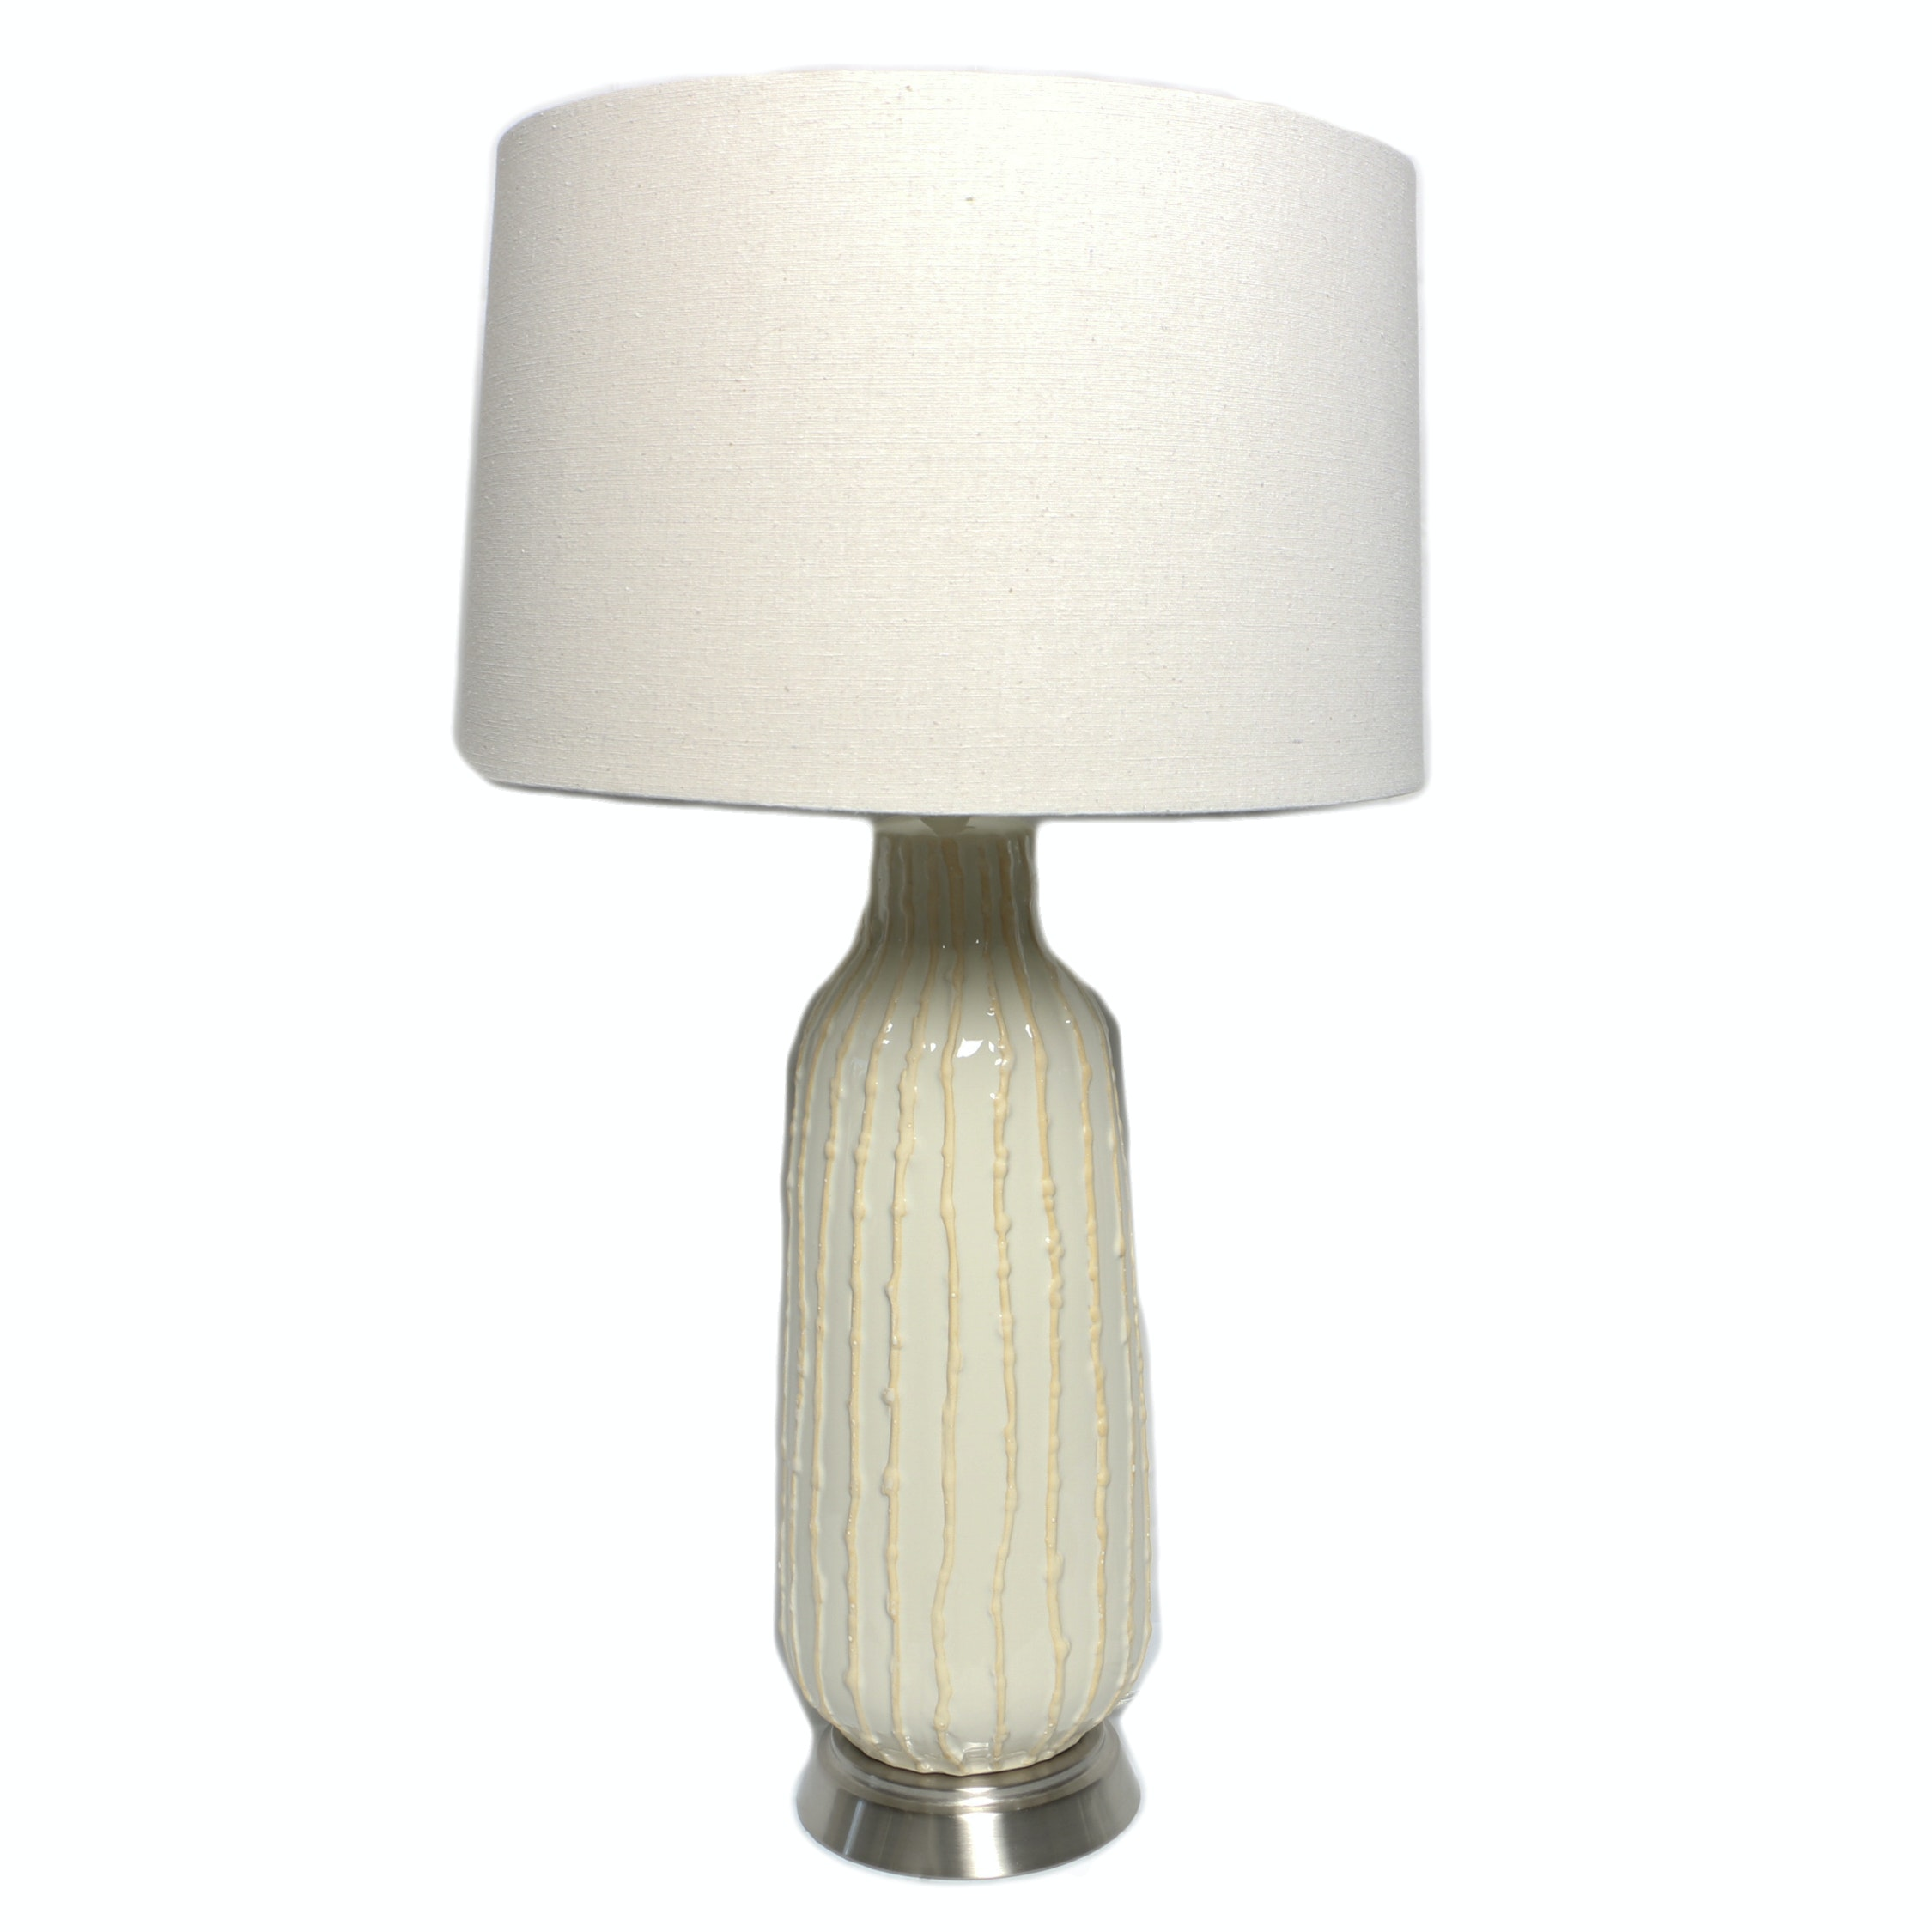 Textured Ceramic Lamp with Shade